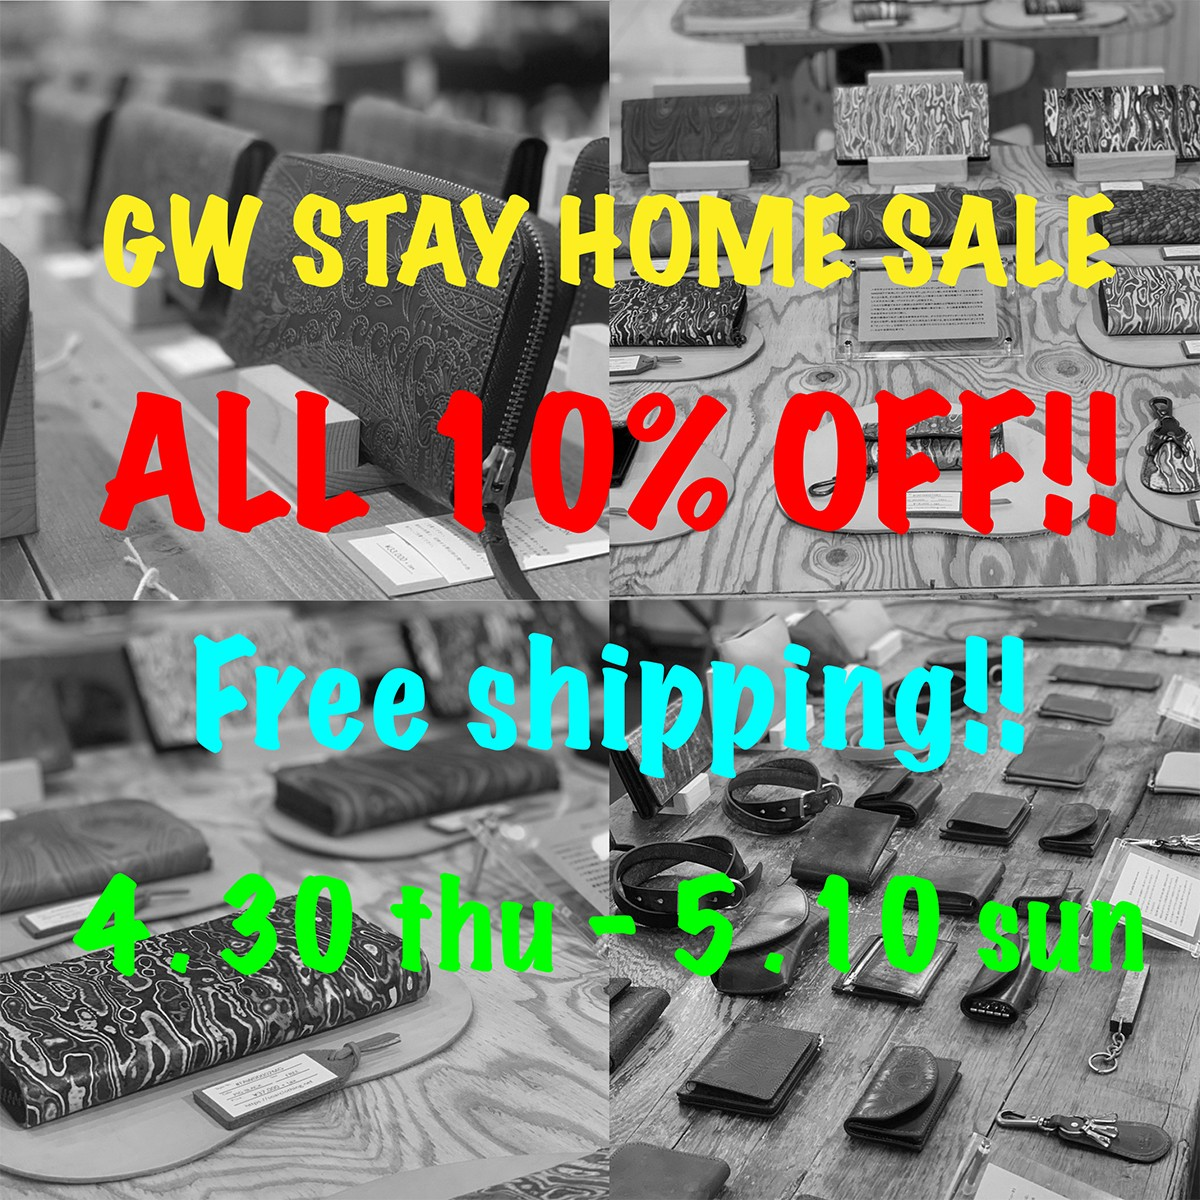 GW STAY HOME SALE